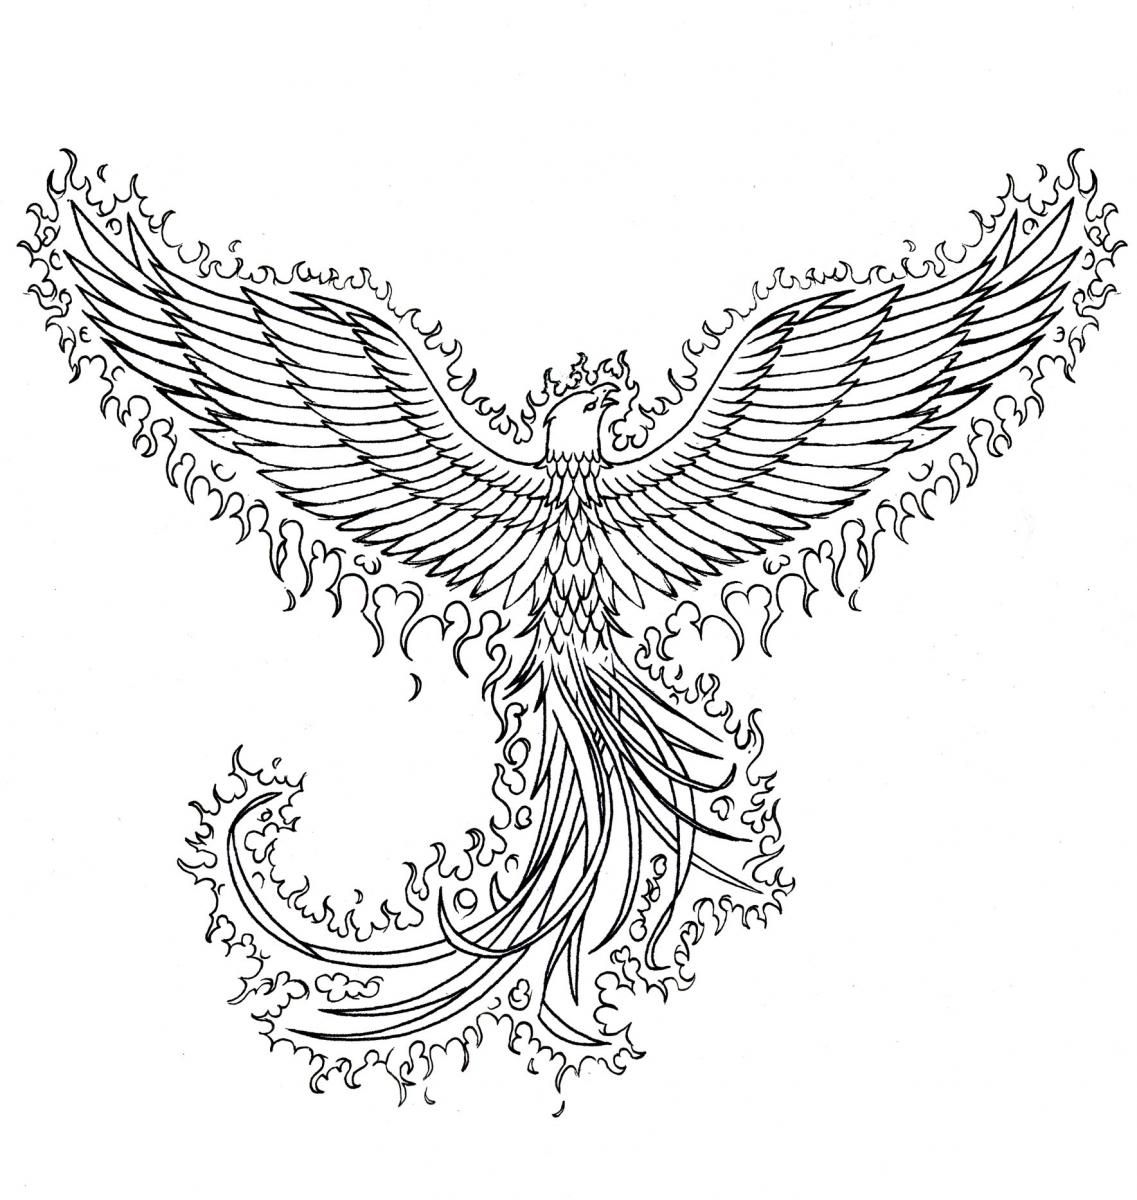 Drawing Of The Phoenix Bird Phoenix Bird Ink Line Art Pictures Pictures Of Phoenix Bird Coloring Pages Coloring Pages